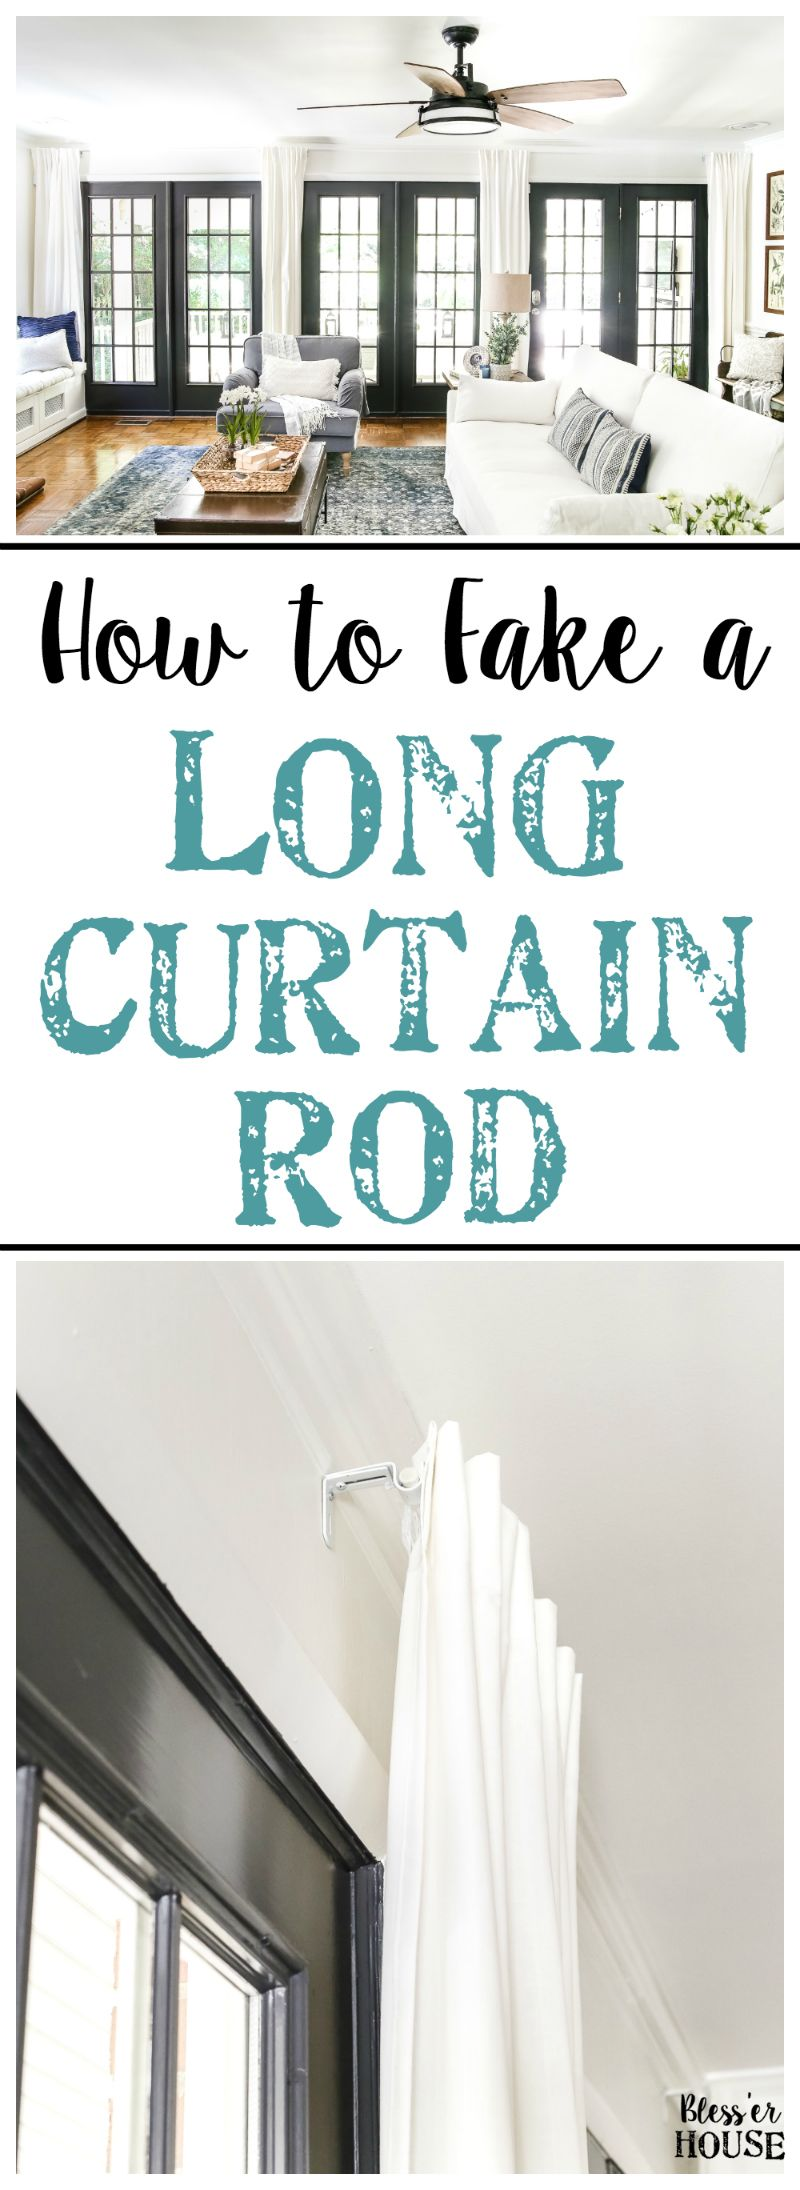 How To Fake A Long Curtain Rod Bless Er House Long Curtain